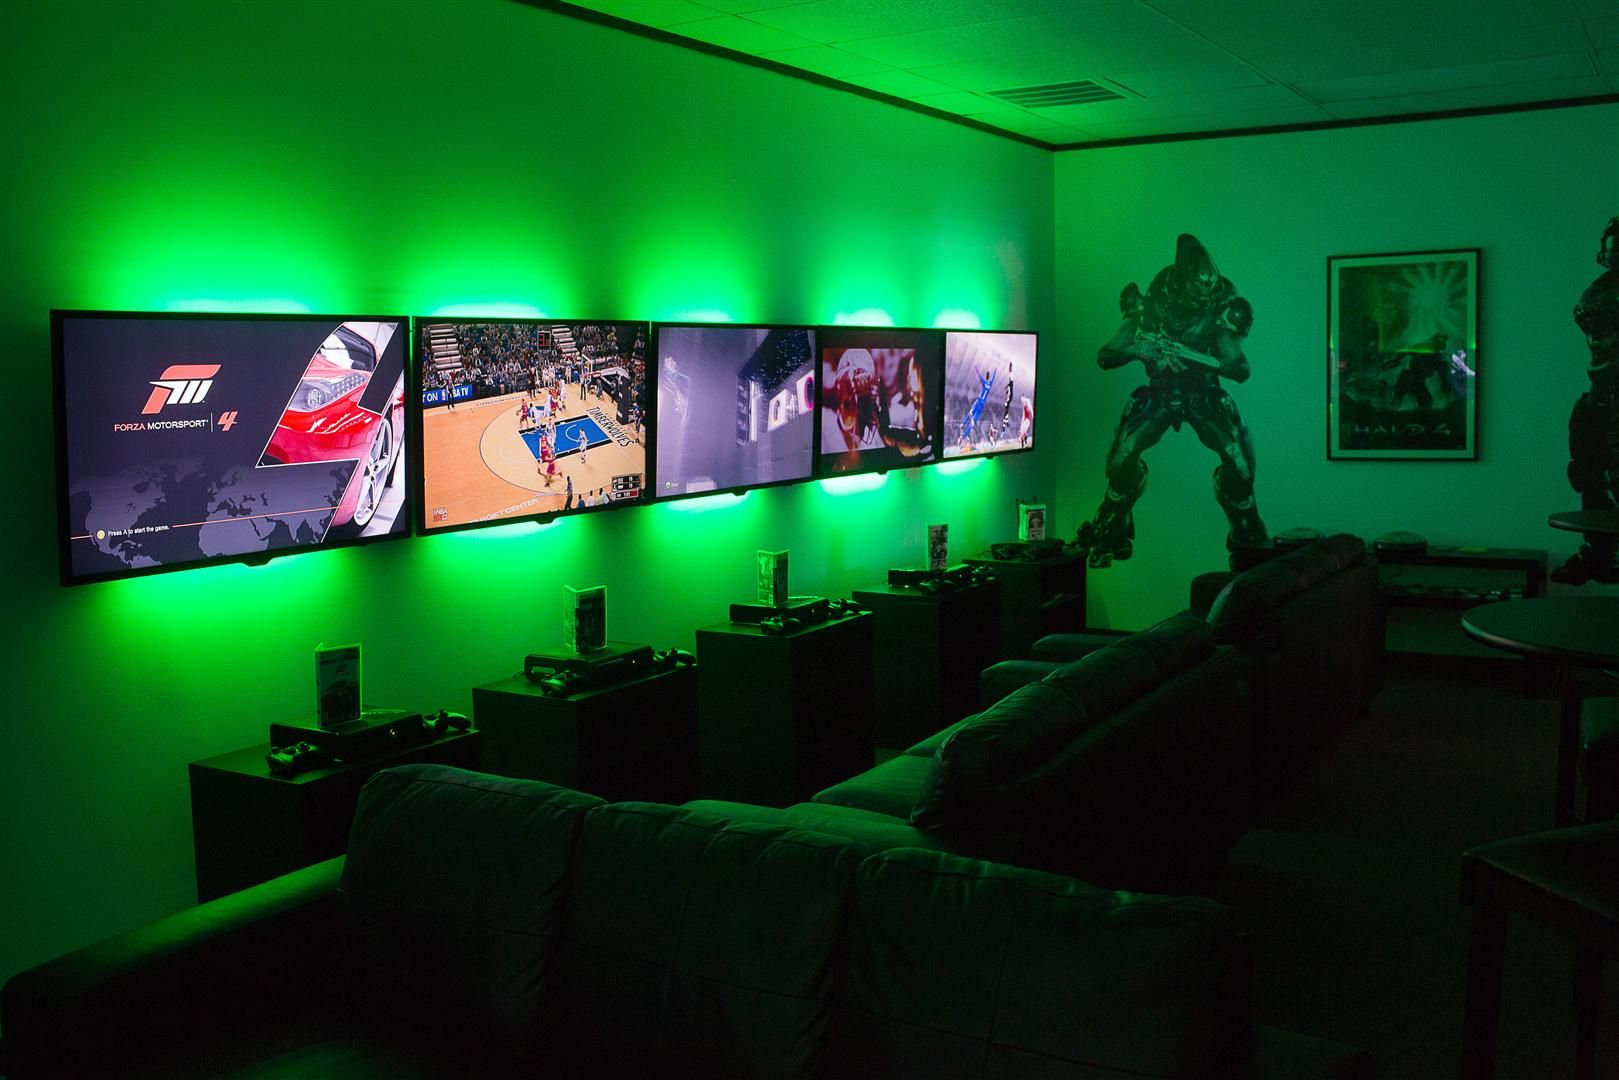 Xbox 360 Lan Party Room Oh Man Dream On Right Gamer Room Video Game Rooms Gaming Room Setup